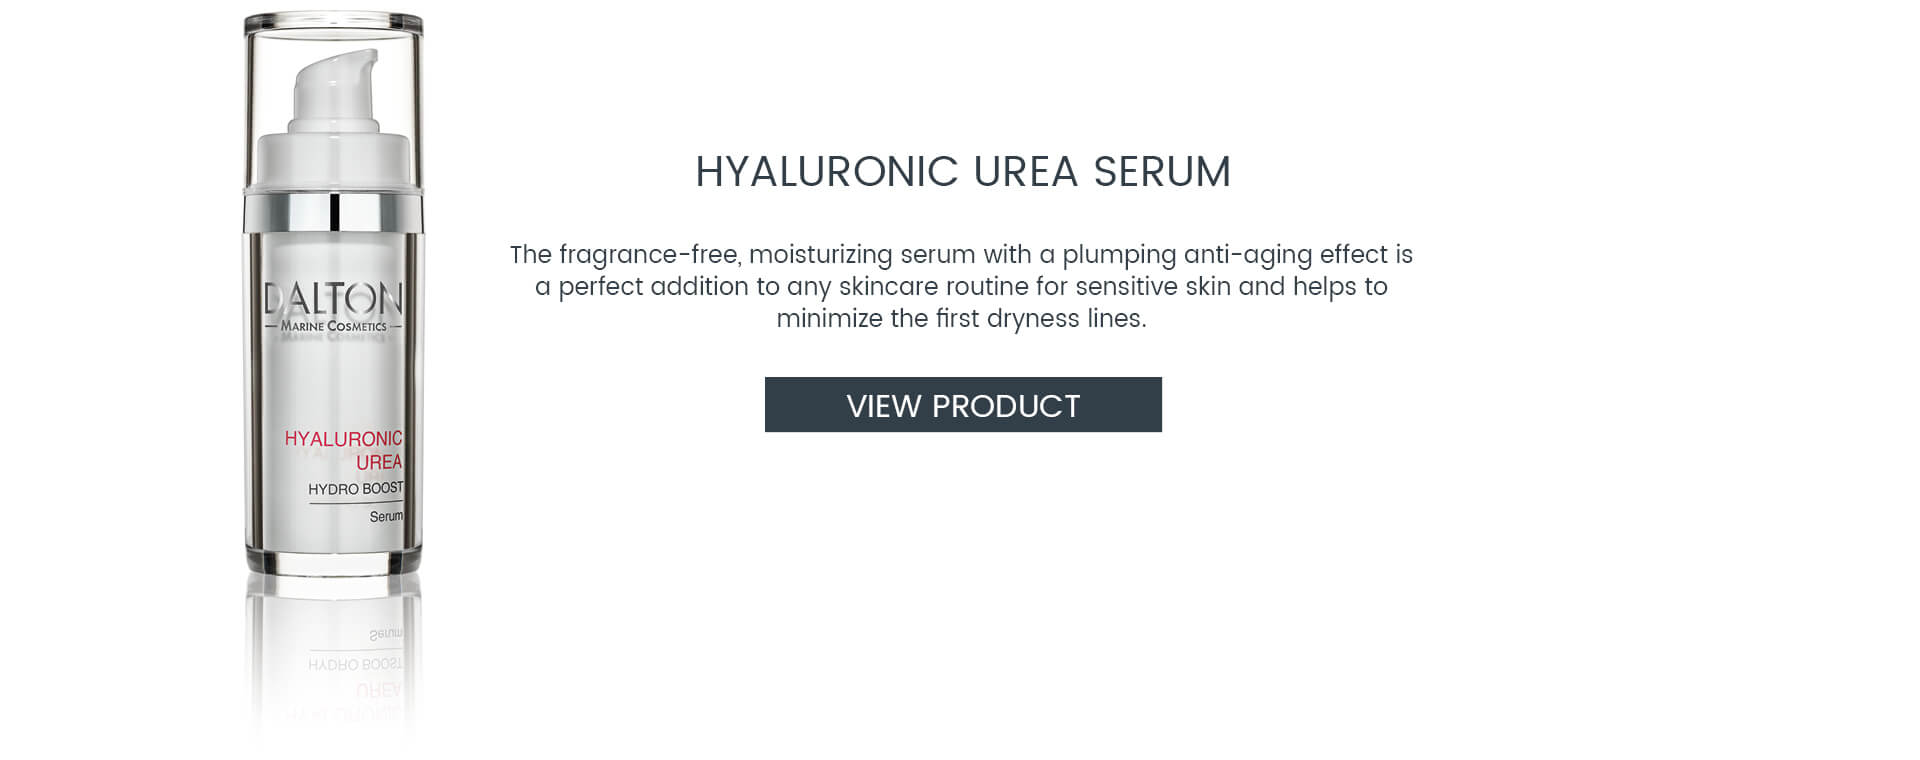 Fragrance-free moisturizing serum with anti-aging effect